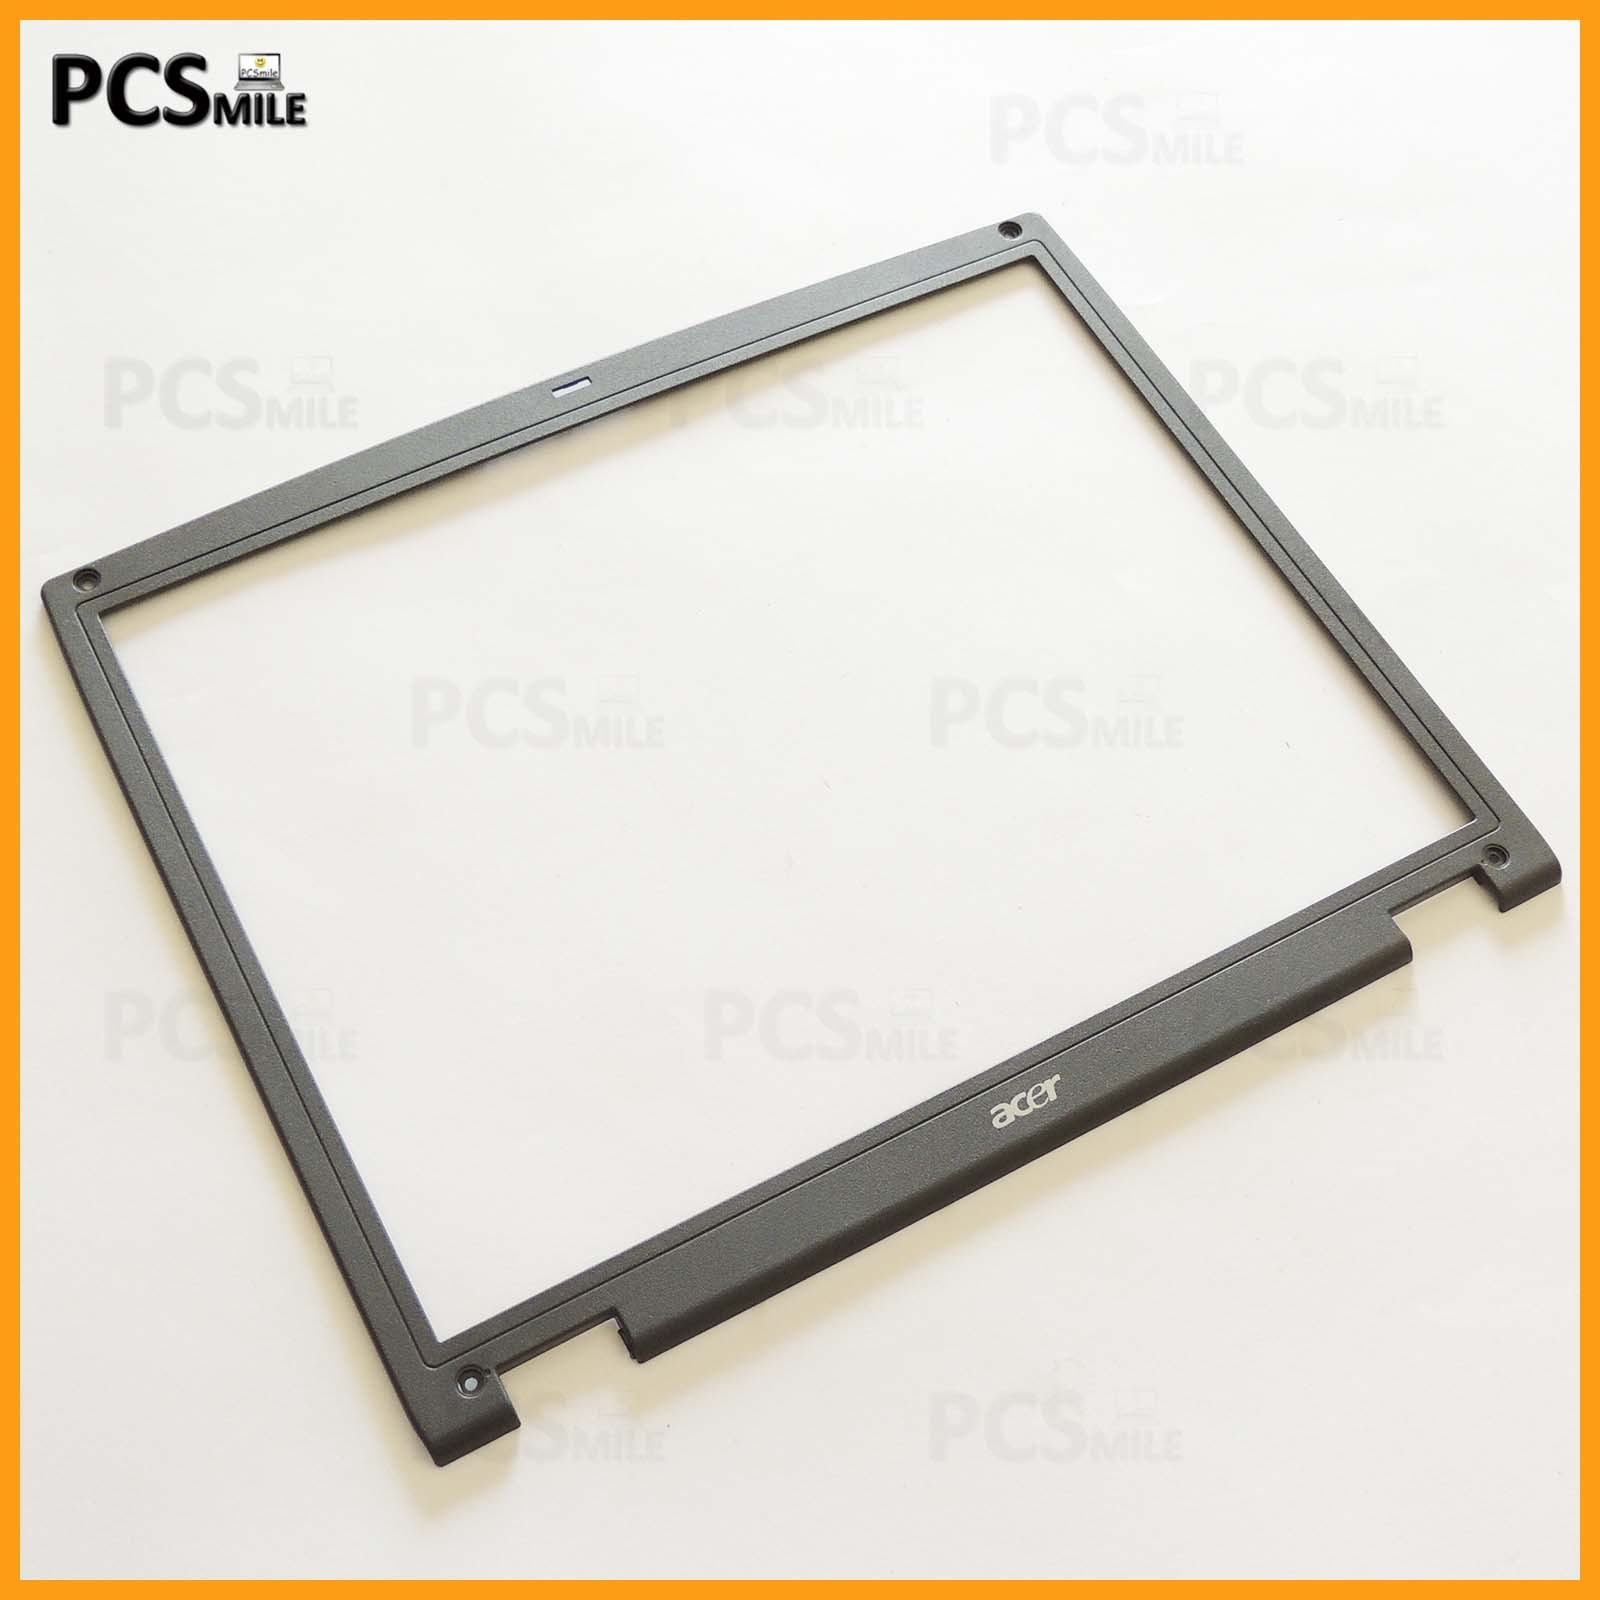 Cornice display Acer 290E Series APCL5529000 Scocca LCD 292ELMi CL51